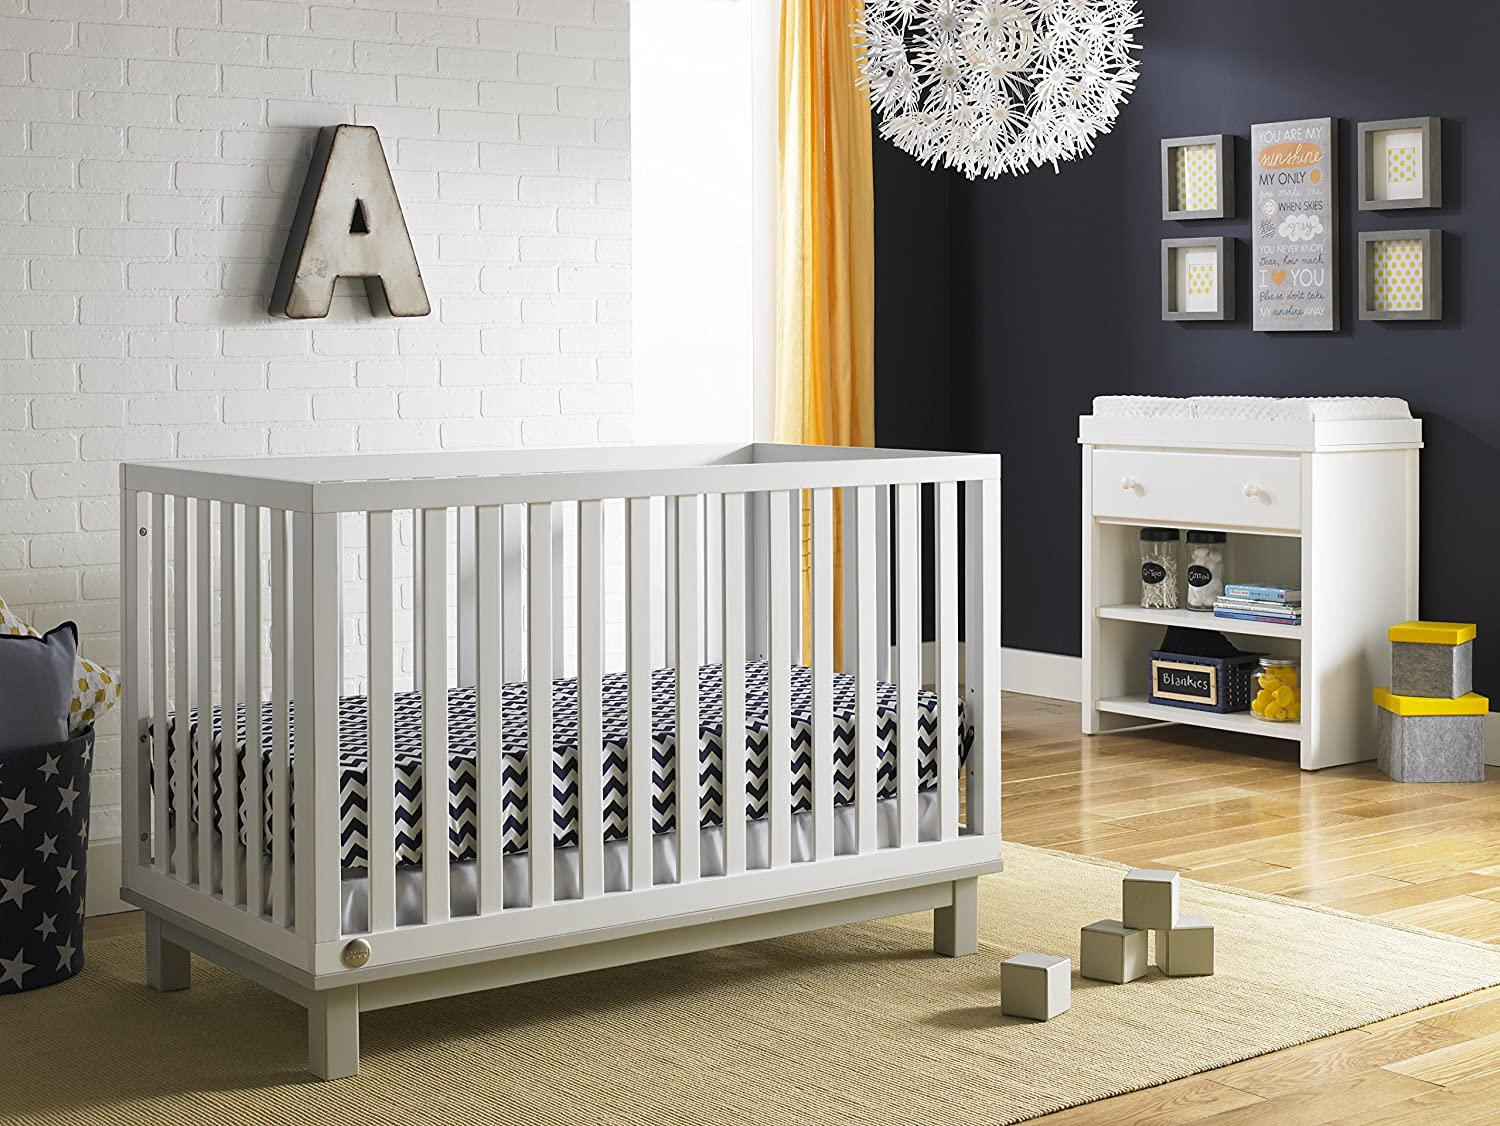 unique cribs boy and for also girls setsr all hippie the crib girl bedding best twin sets baby with depot